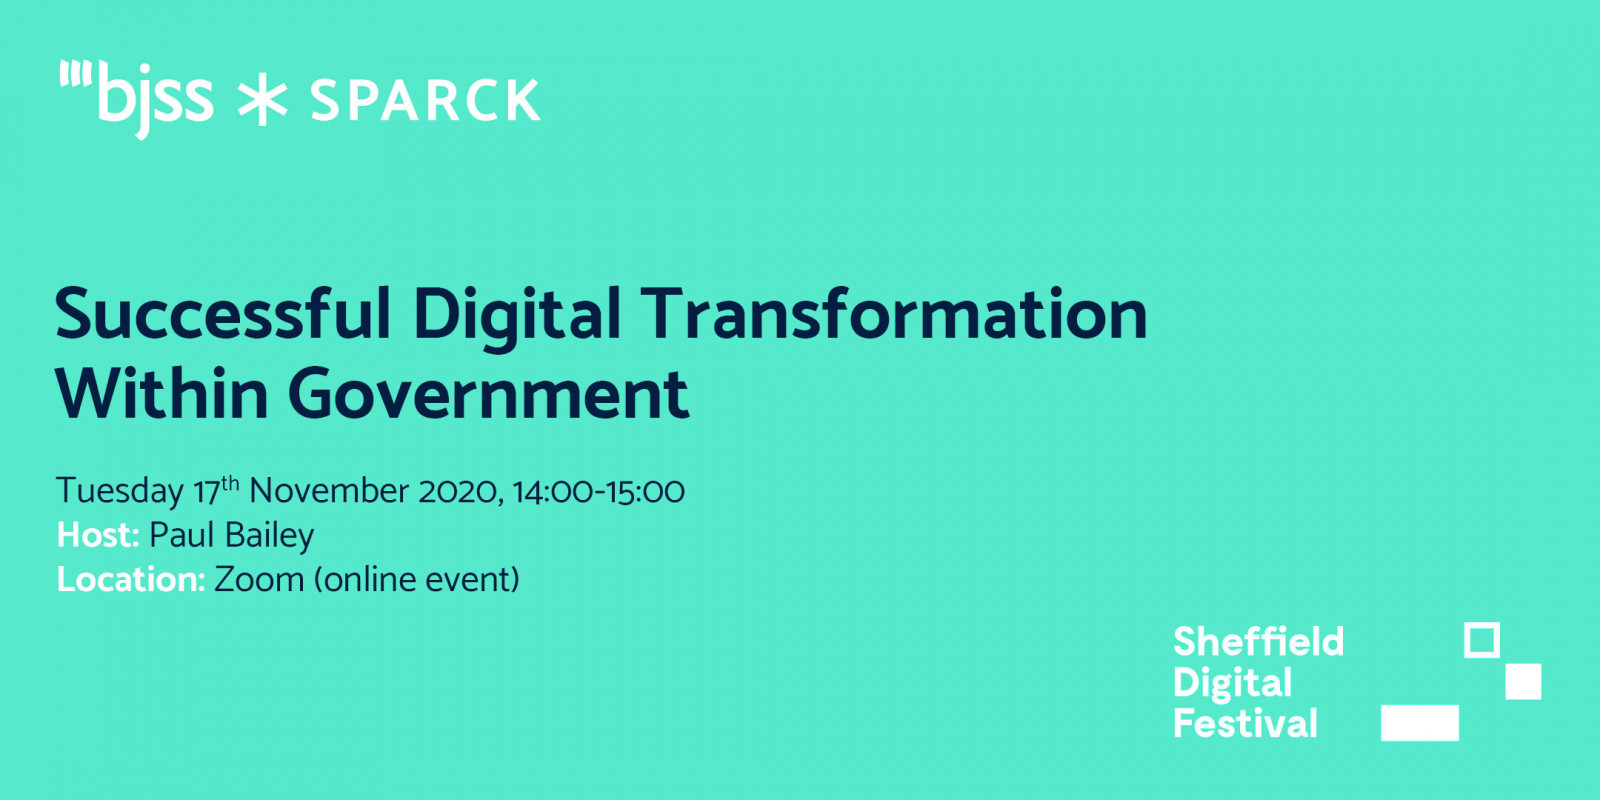 Successful Digital Transformation Within Government - SPARCK header image